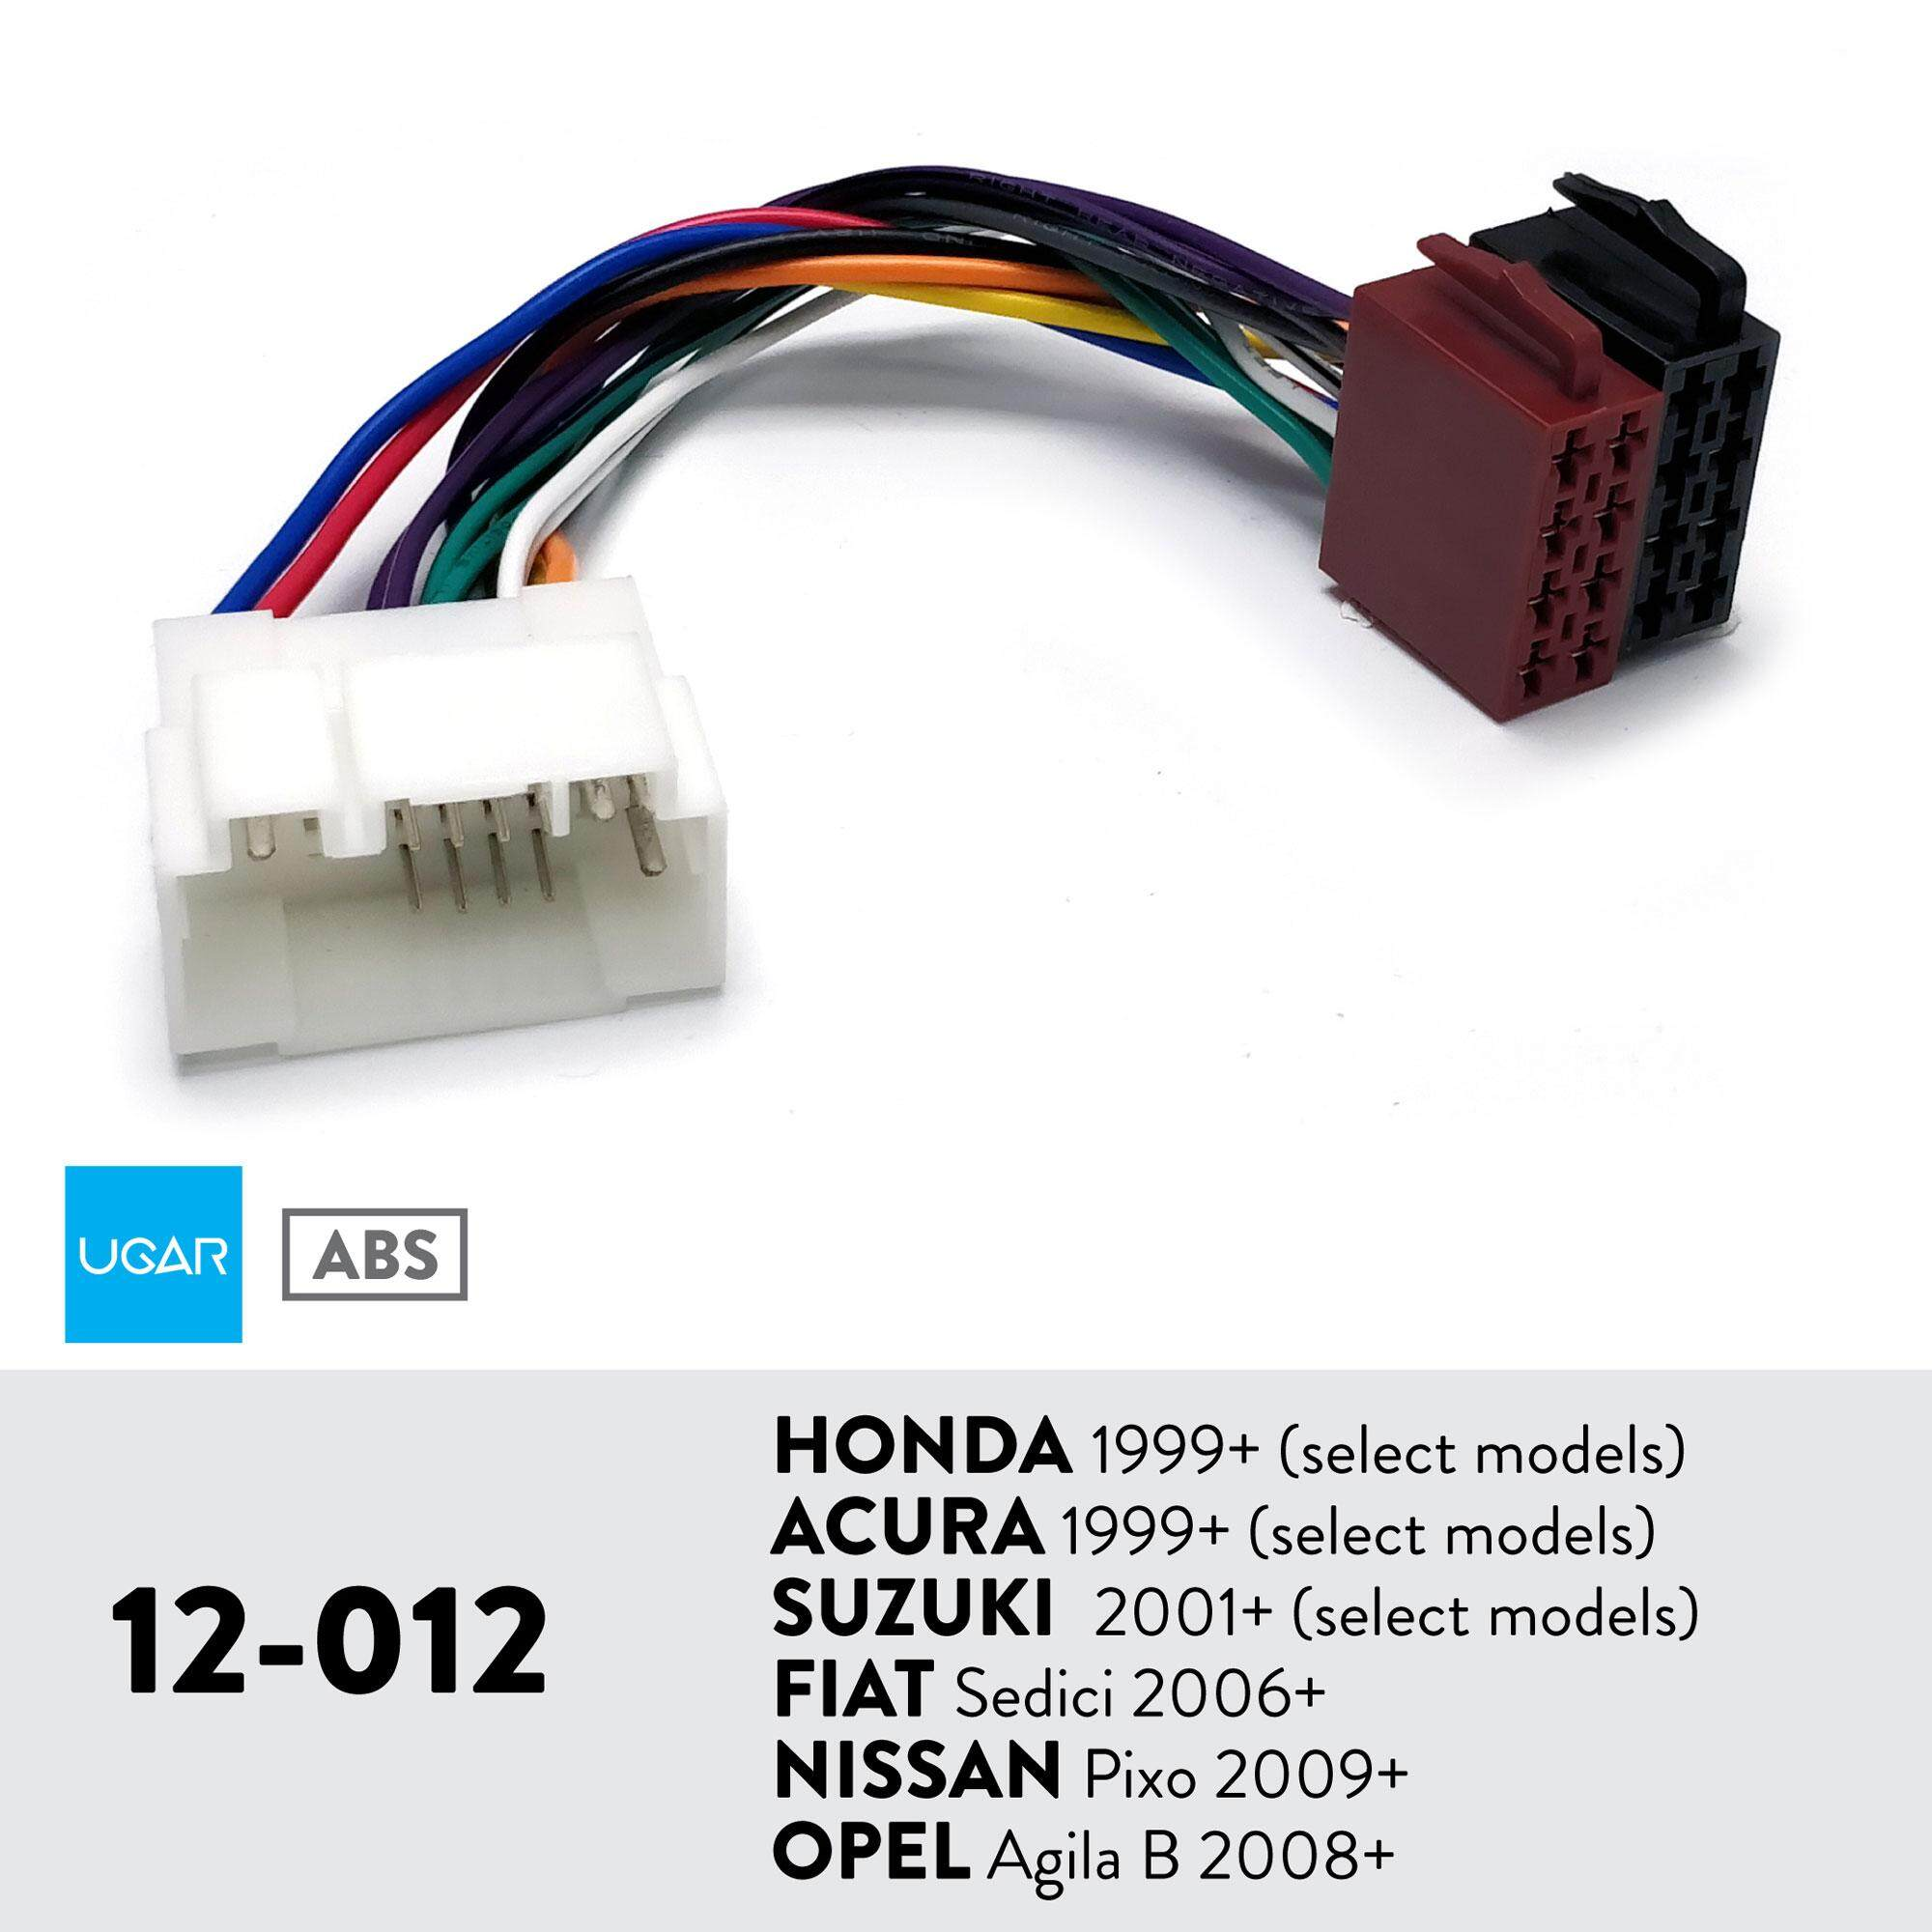 Select Models // Daihatsu 1985+ UGAR 12-900 Harness for Toyota 1984+ Select Models // Lexus 1991+ Select Models